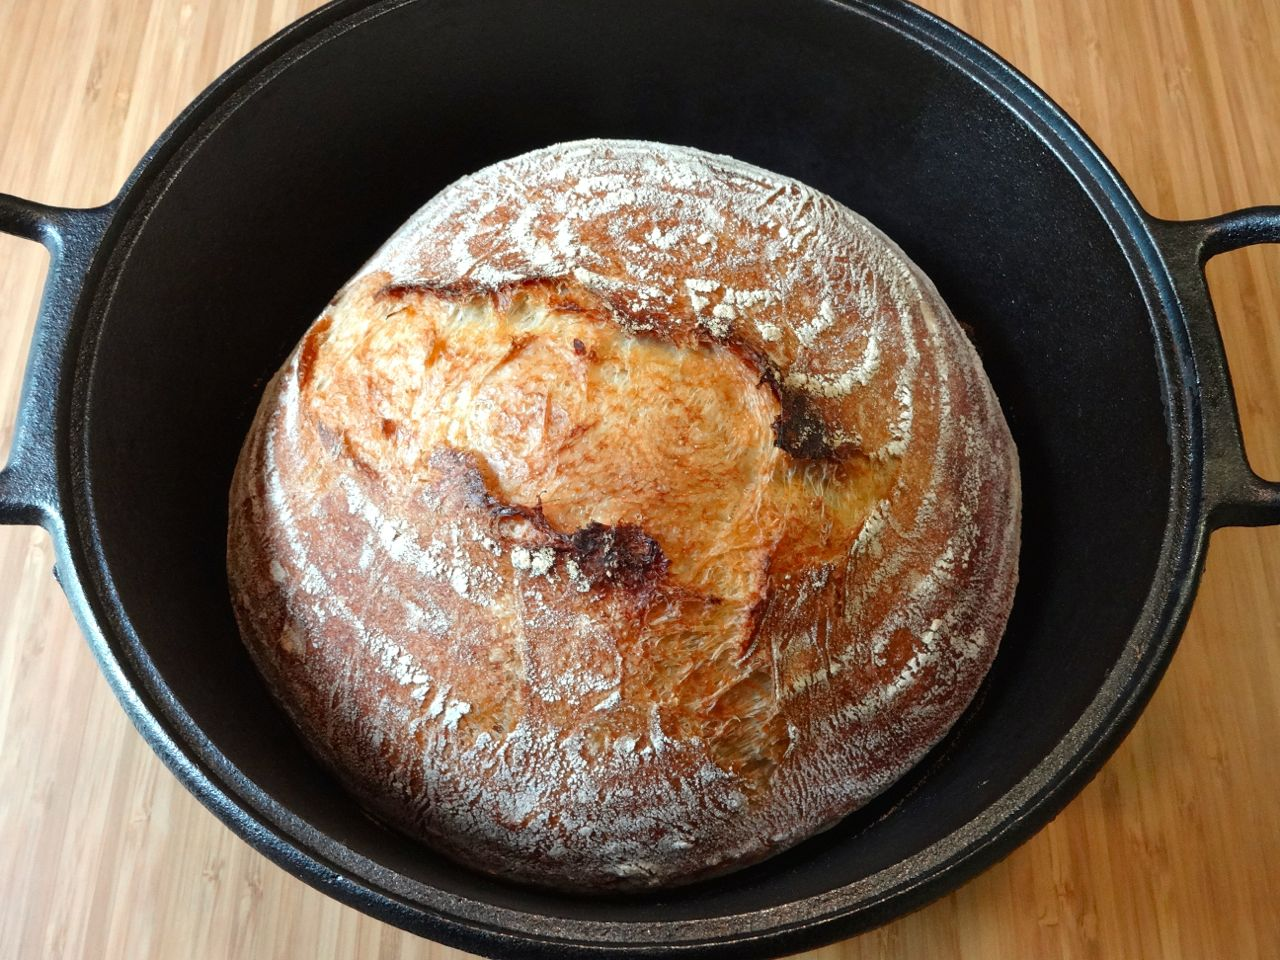 7. preheat cast iron dutch oven in 475F oven (use oven thermometer) bake the bread covered 30 min, then remove lid and bake 15 min longer cool completely on rack before eating